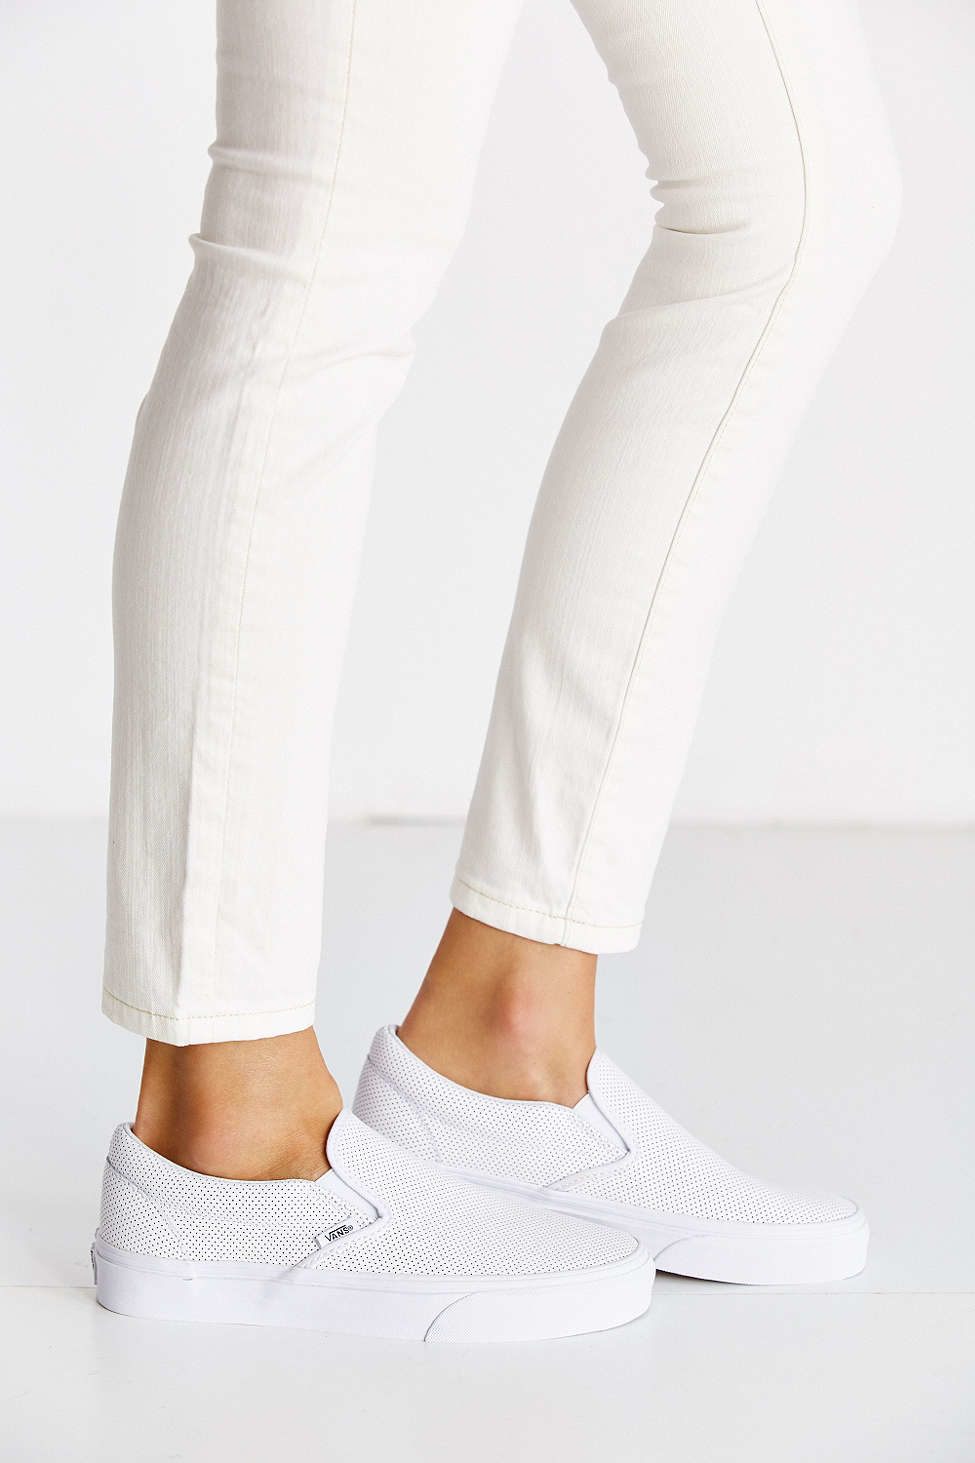 faf9af9fa4 Lyst - Vans Perforated Leather Slip-on Sneaker in White